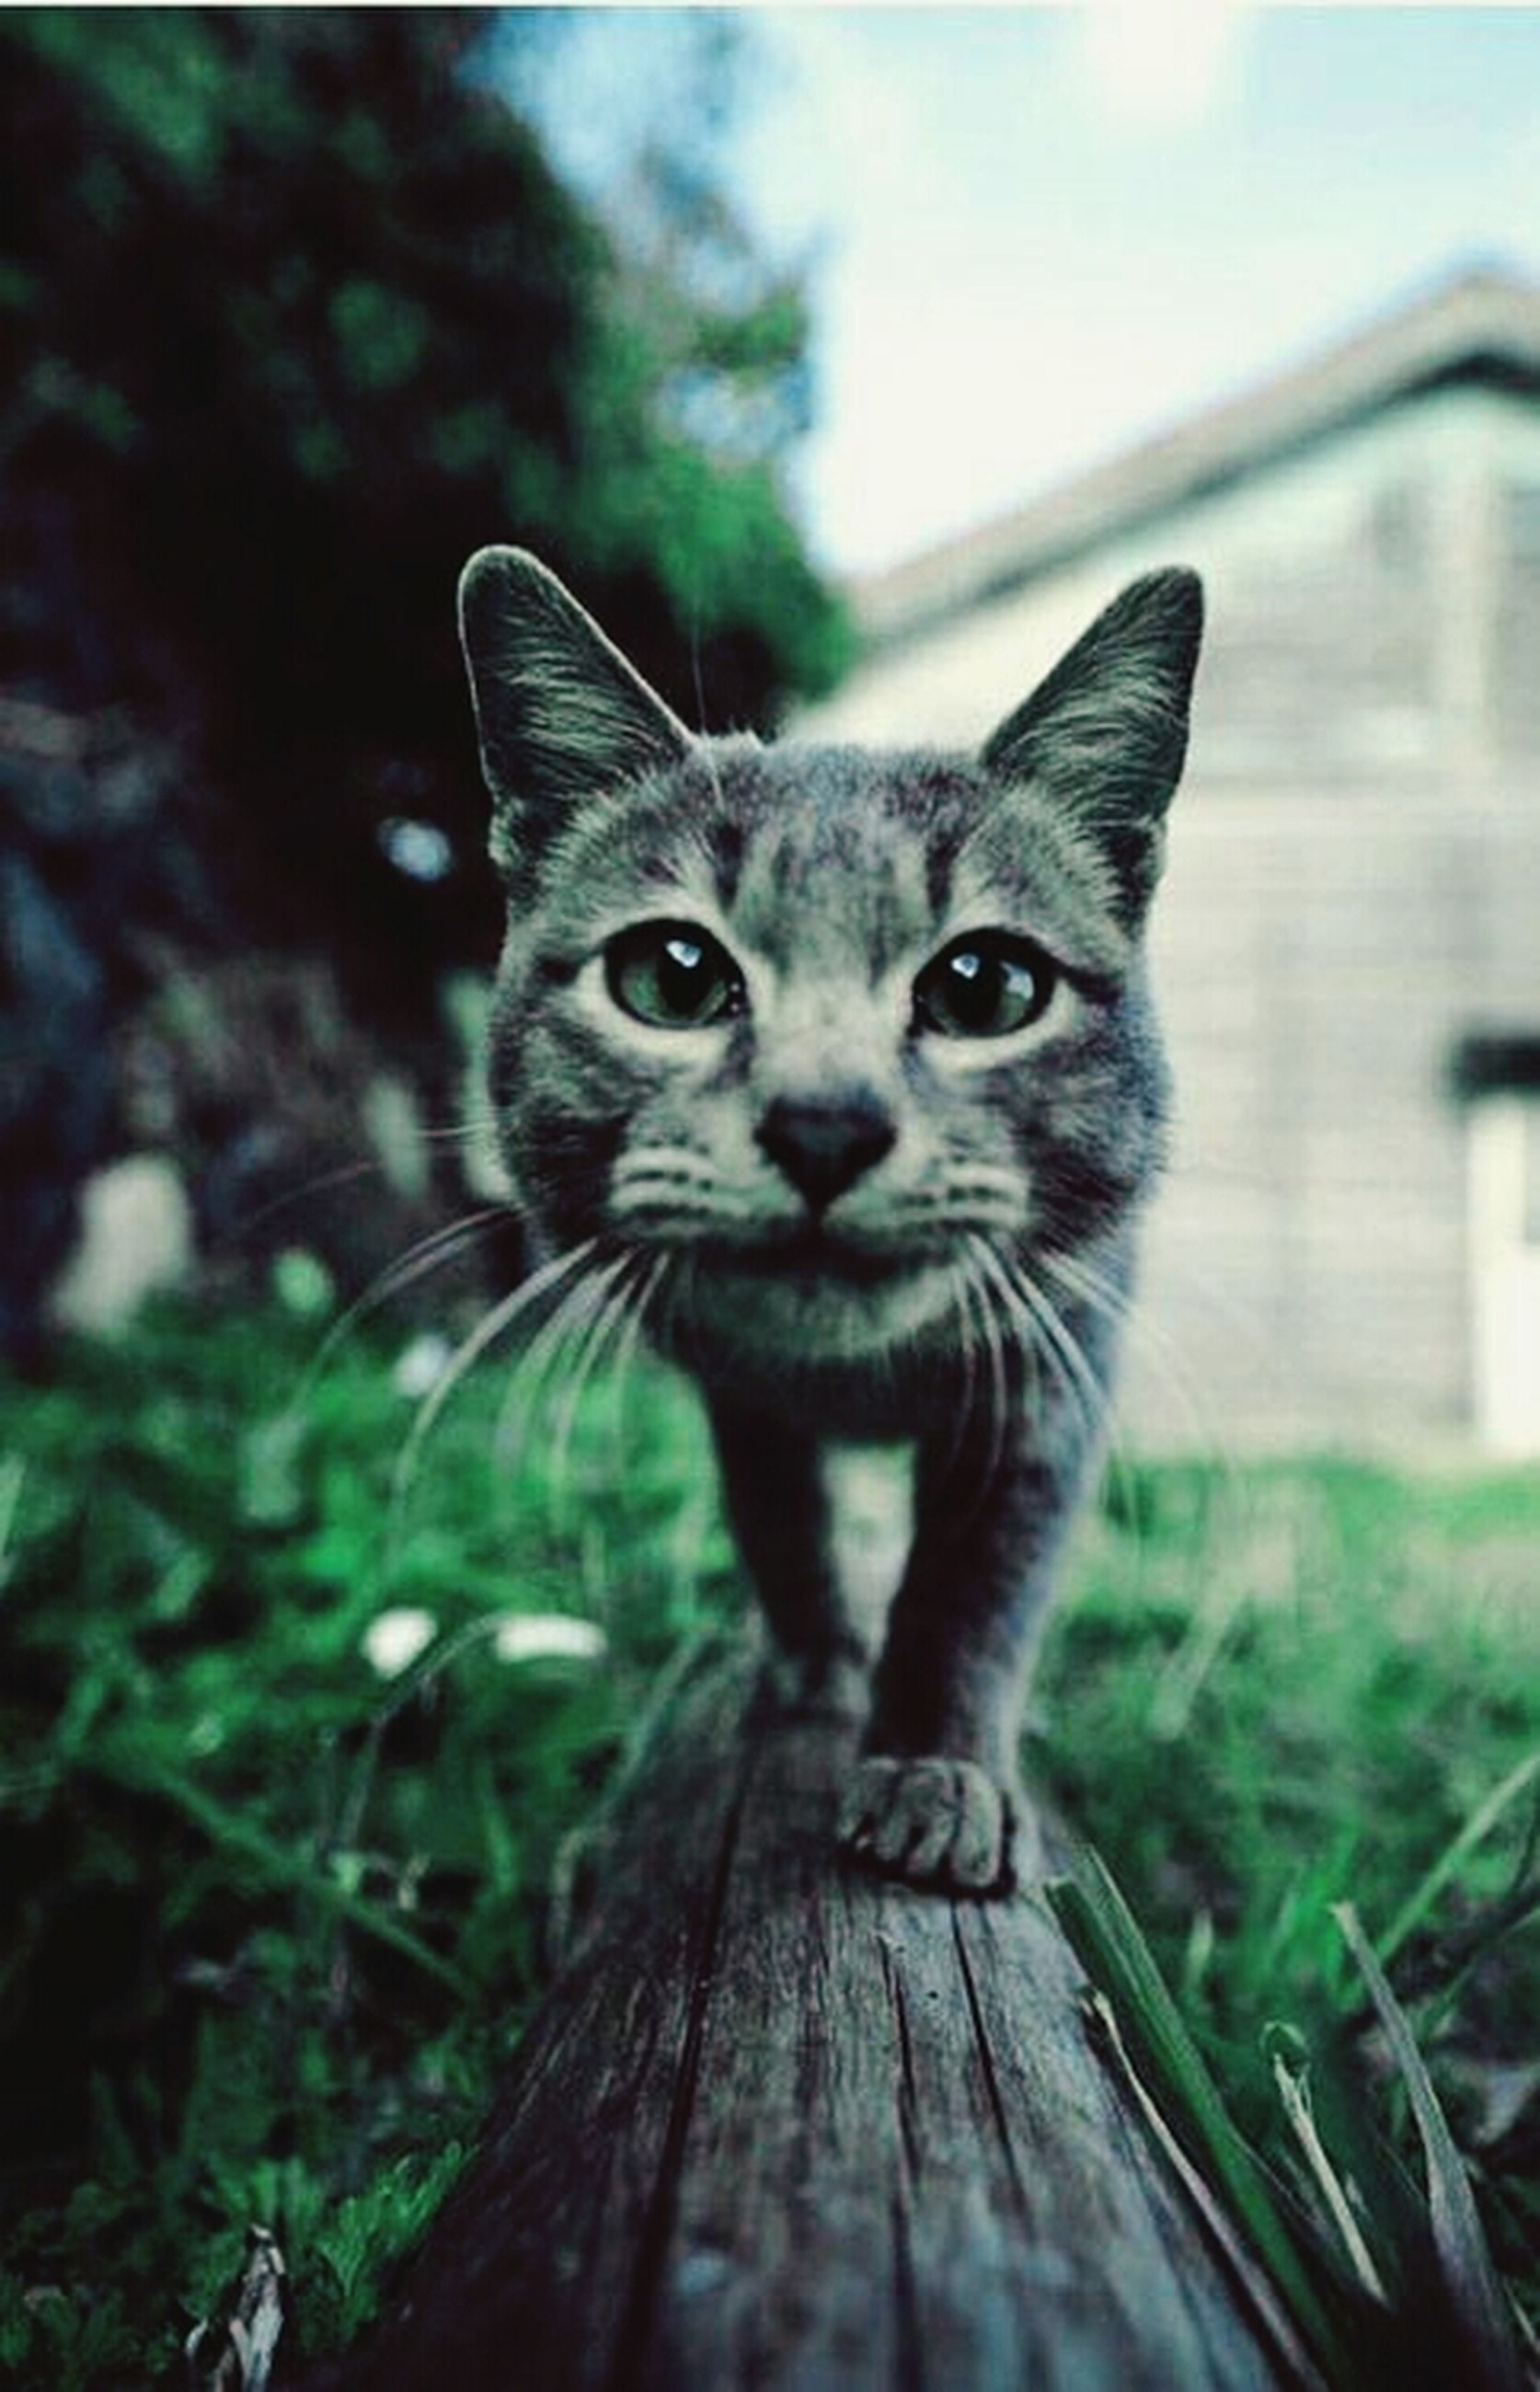 domestic cat, one animal, animal themes, pets, cat, mammal, feline, domestic animals, portrait, looking at camera, whisker, grass, focus on foreground, front view, field, close-up, sitting, staring, alertness, selective focus